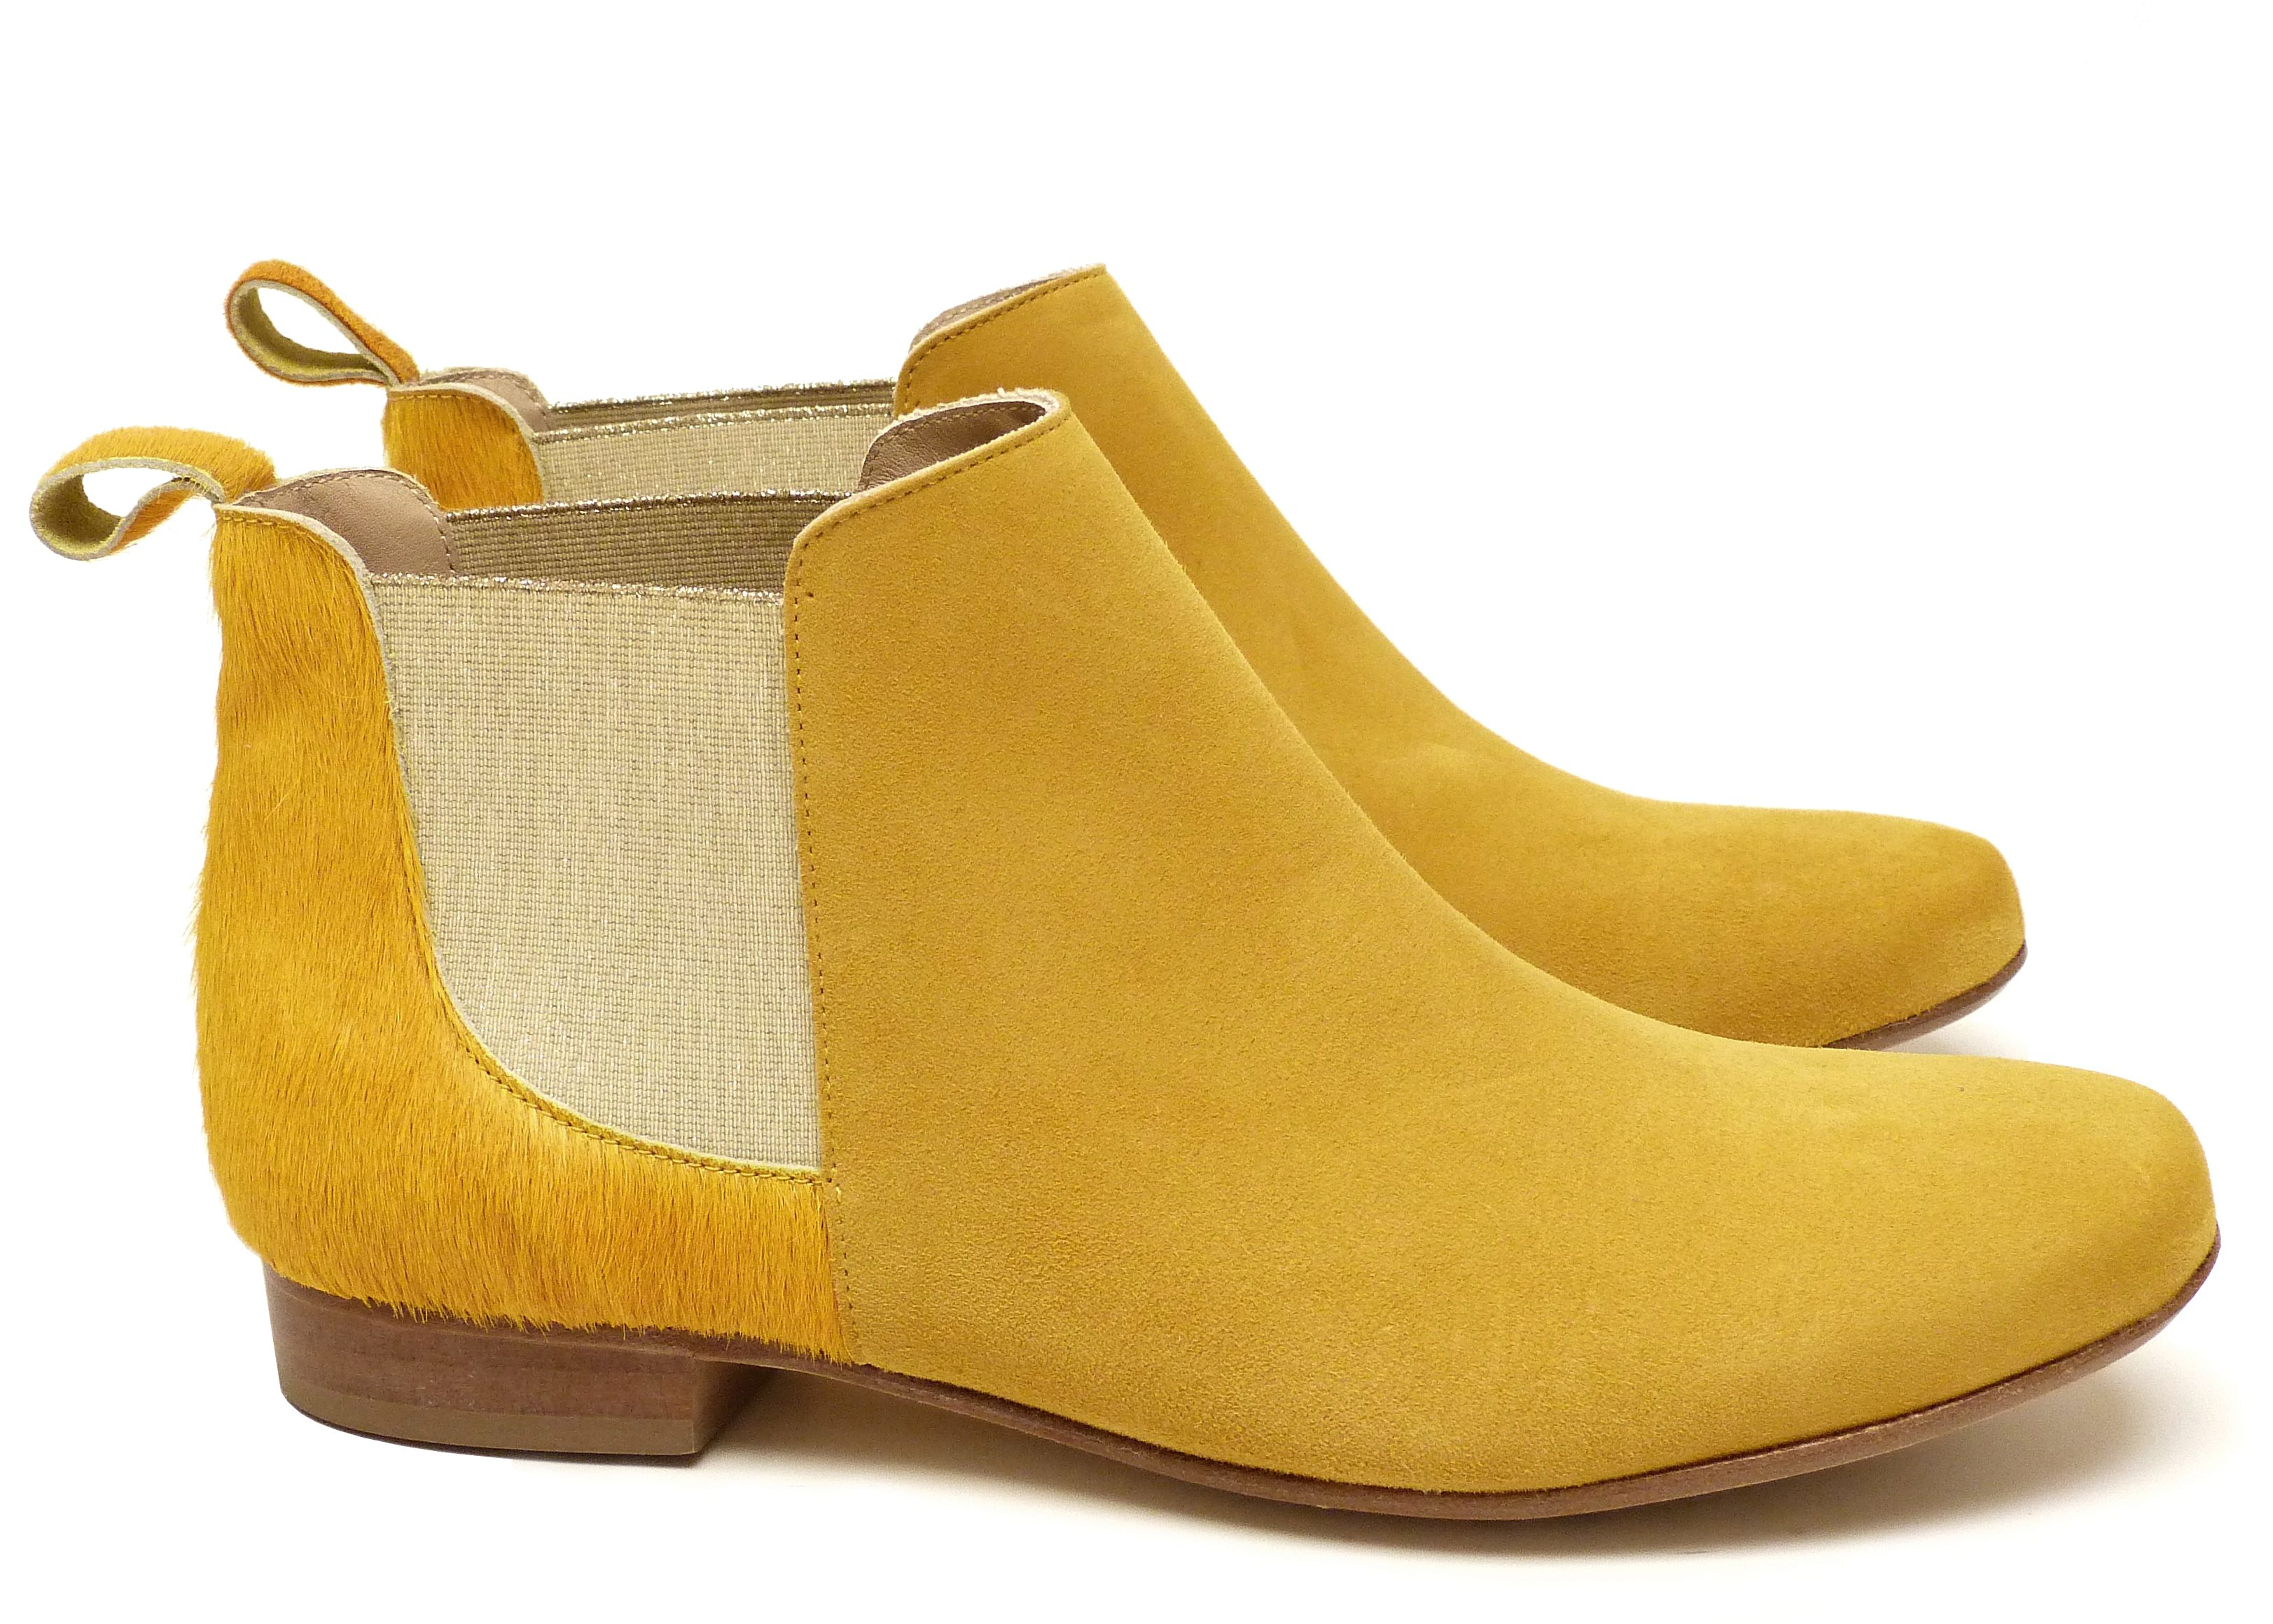 chaussure femme boots printemps ete 2015 maurice manufacture brice